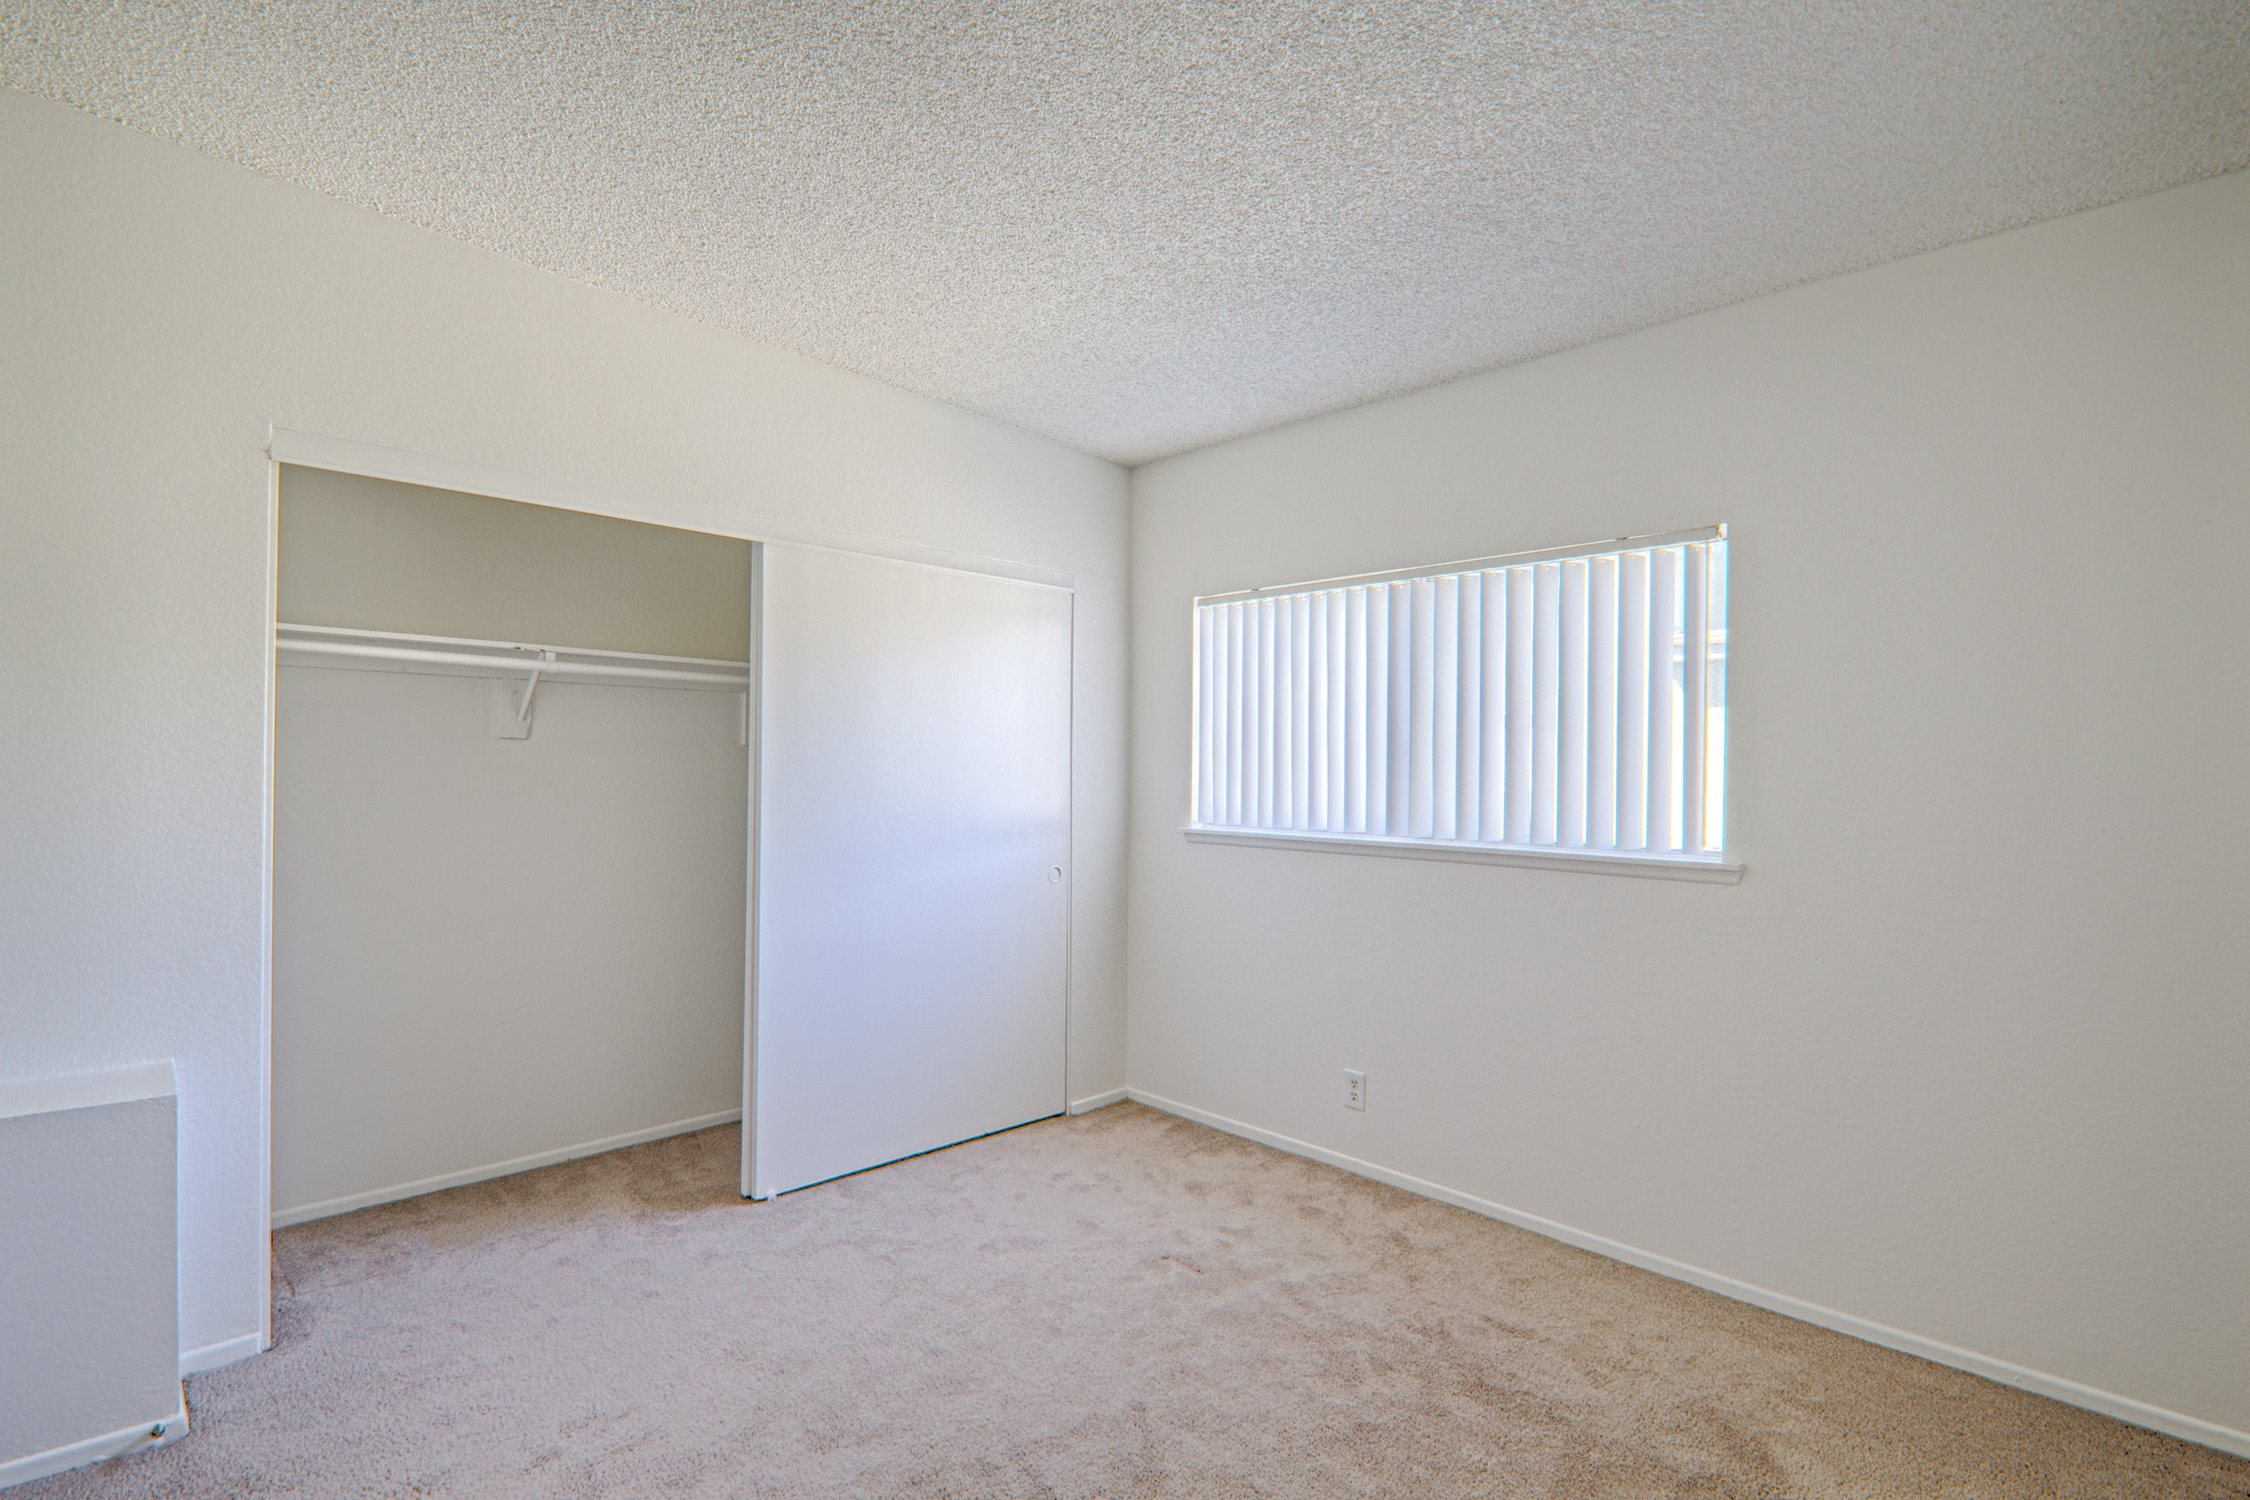 Bedroom with Carpeting at Woodlands West Townhomes, Lancaster, CA,93536